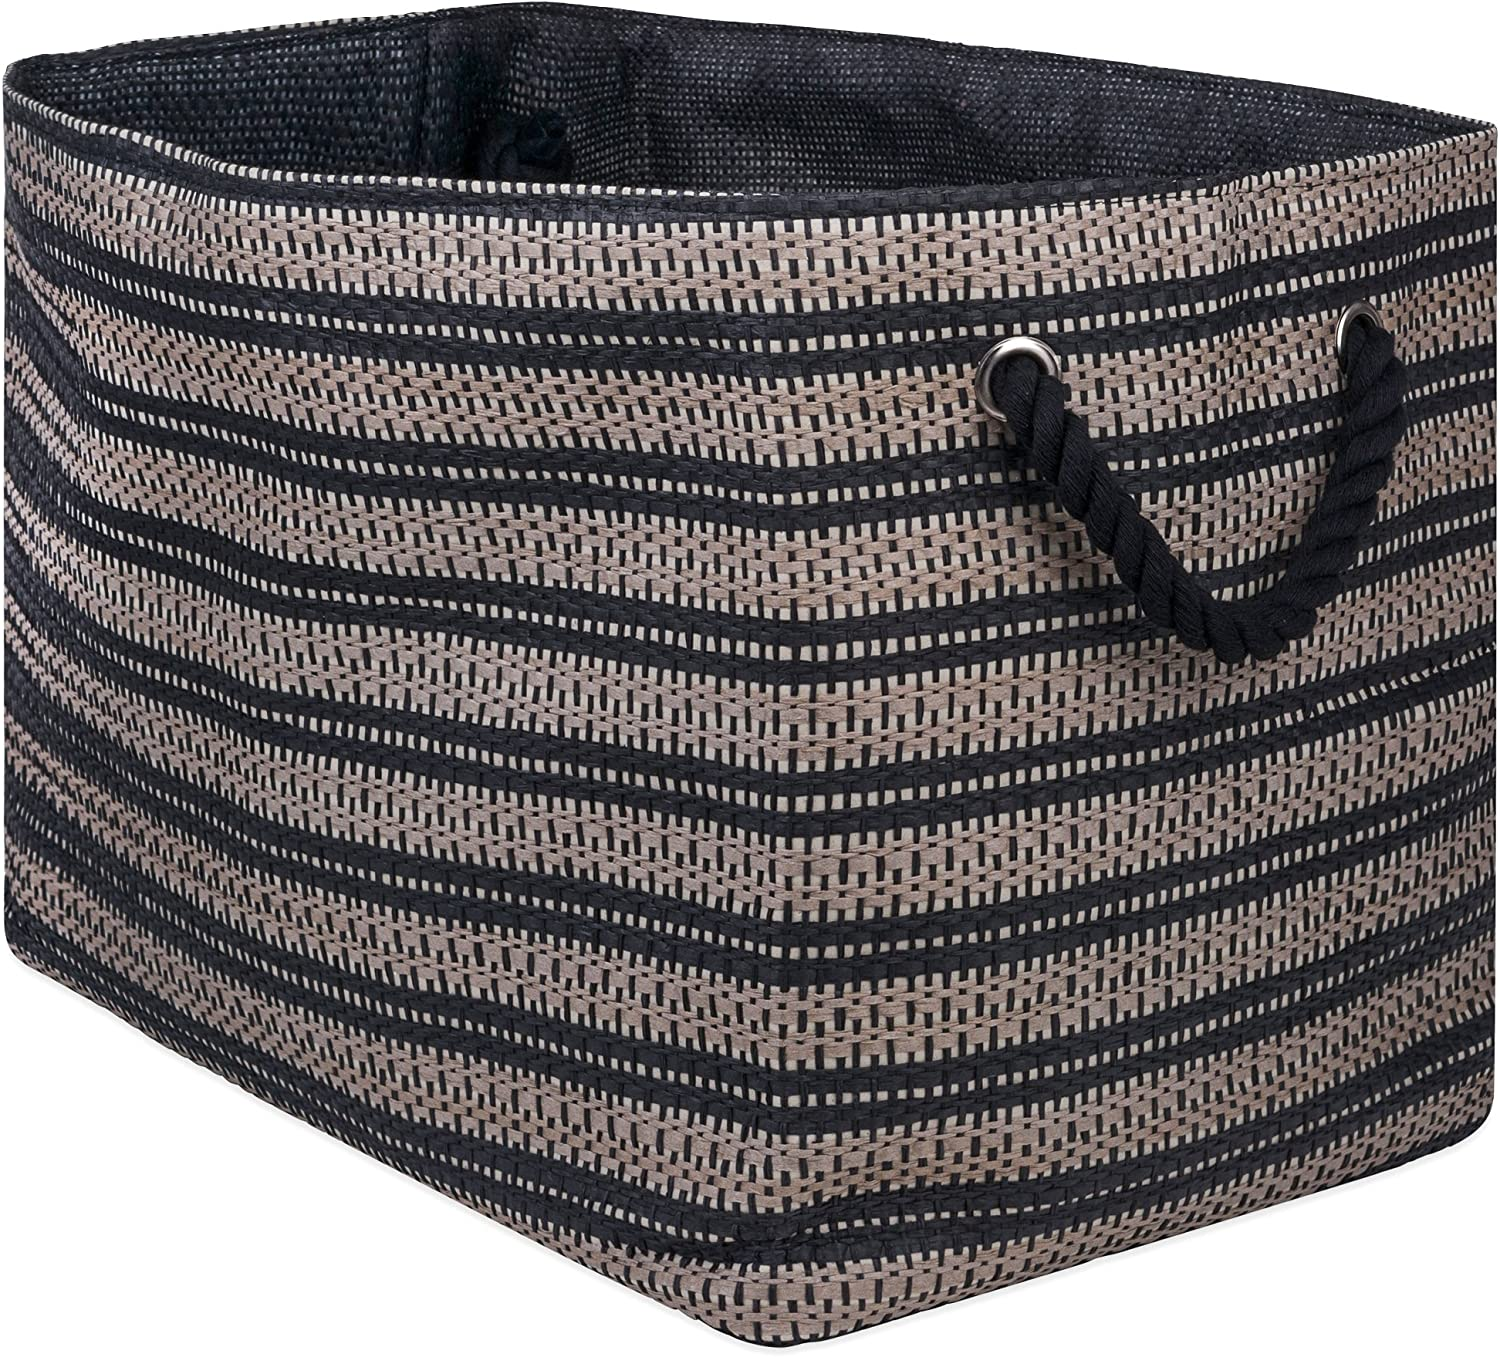 DII Basketweave Woven Paper Laundry & Storage Bin, Large Rectangle, Stone & Black